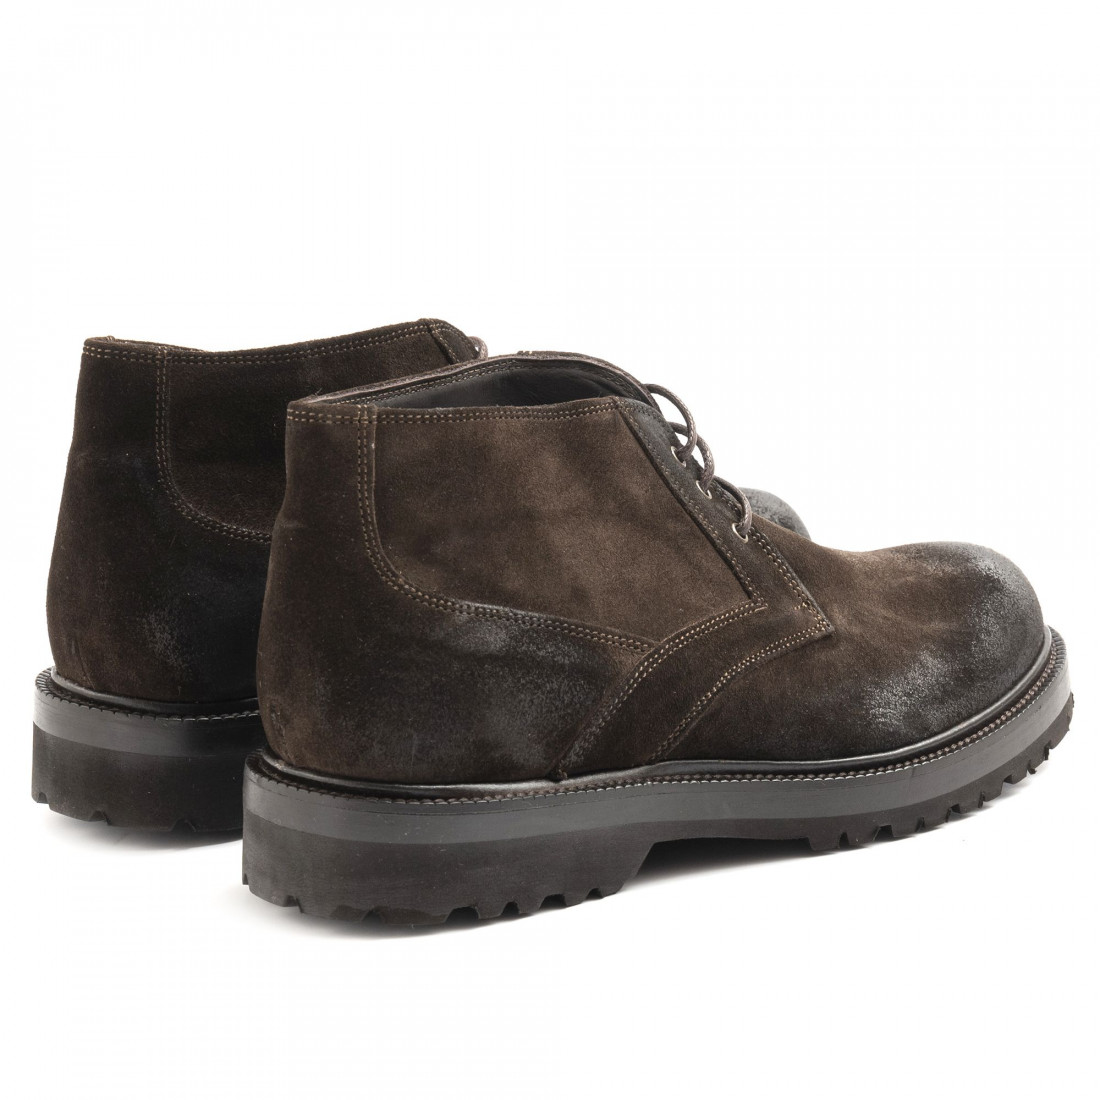 lace up ankle boots man sangiorgio 6000cam t moro 6509